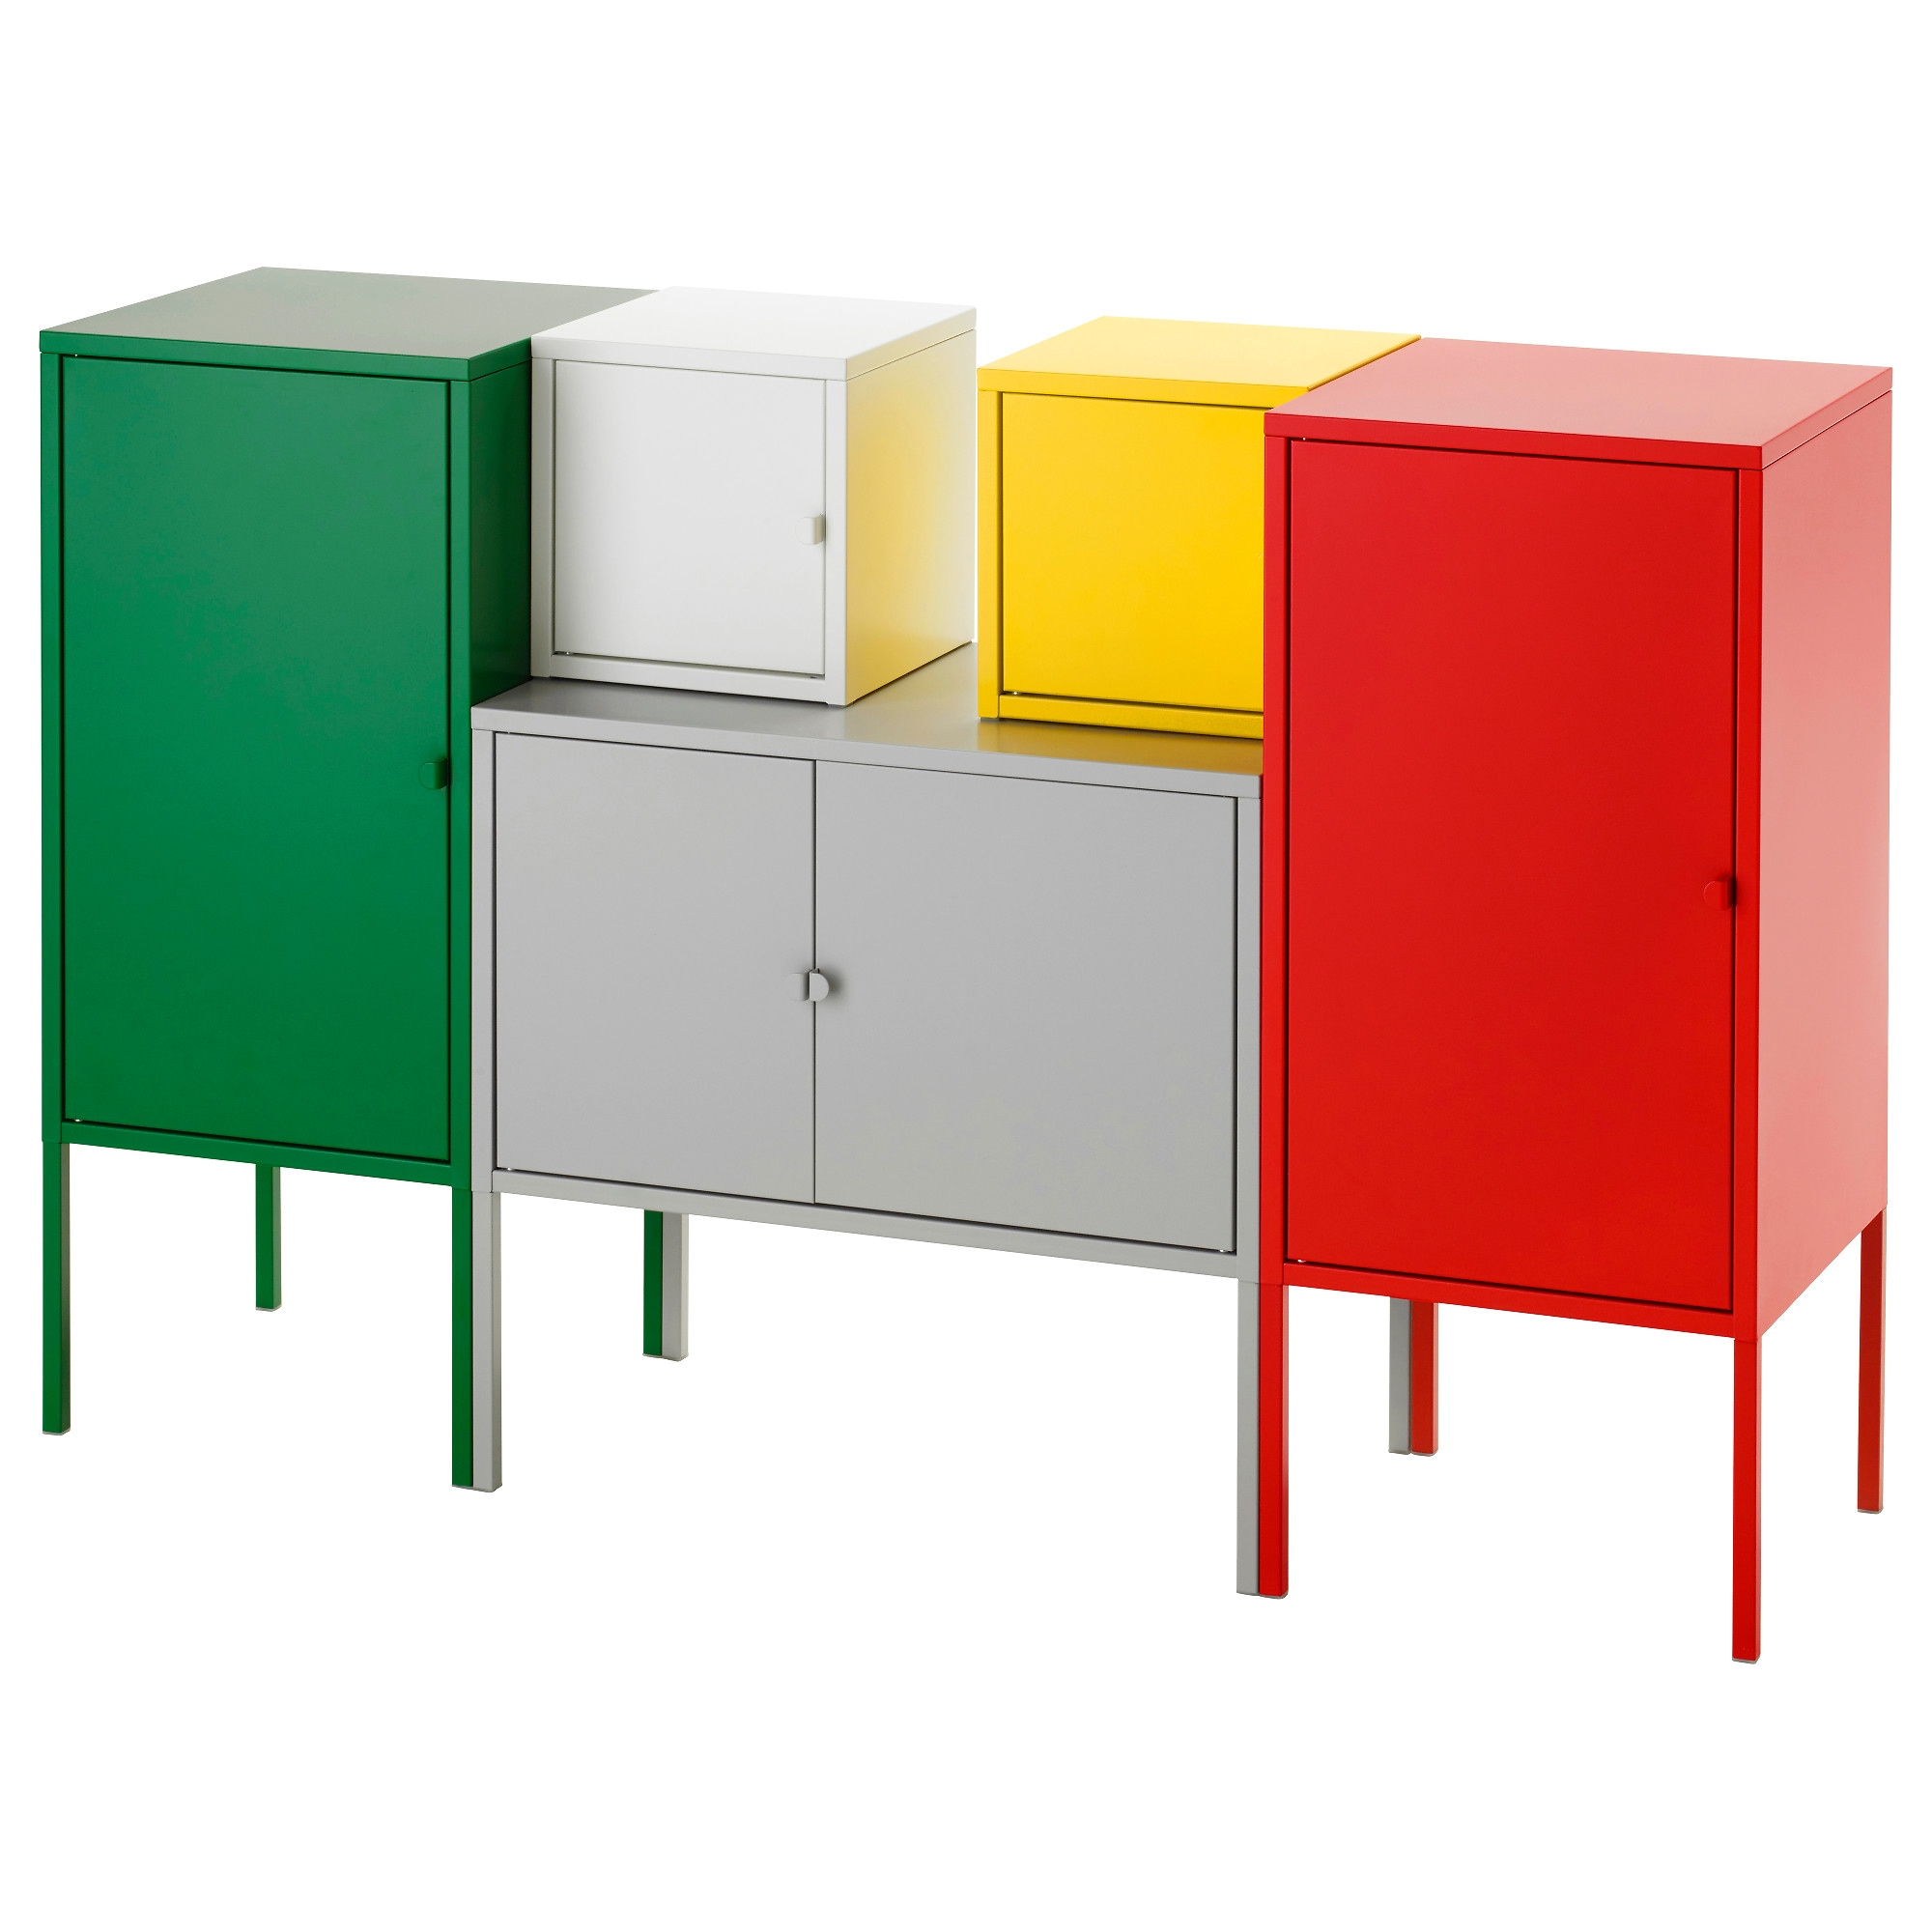 Buffet table furniture ikea - Lixhult Storage Combination White Red Yellow Green Gray Width 51